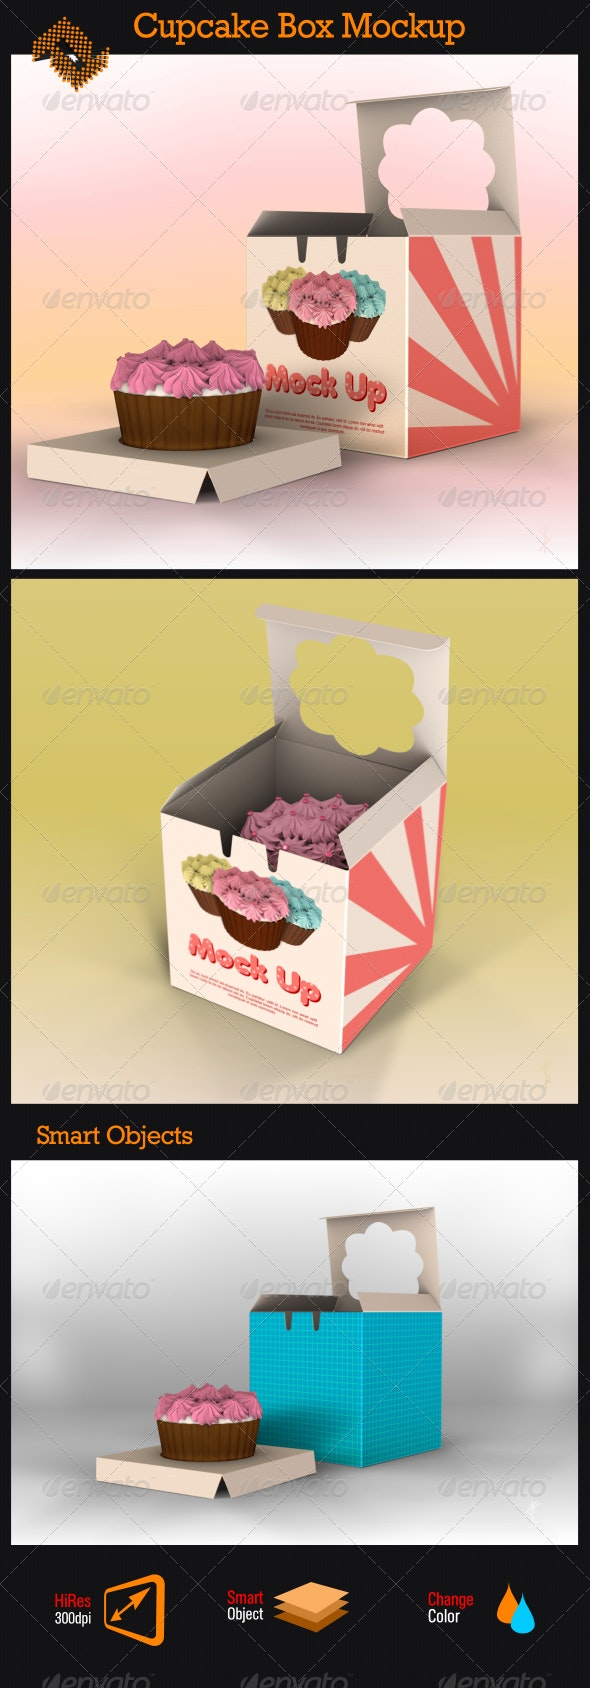 One Piece Cupcake Box Mockup - Food and Drink Packaging